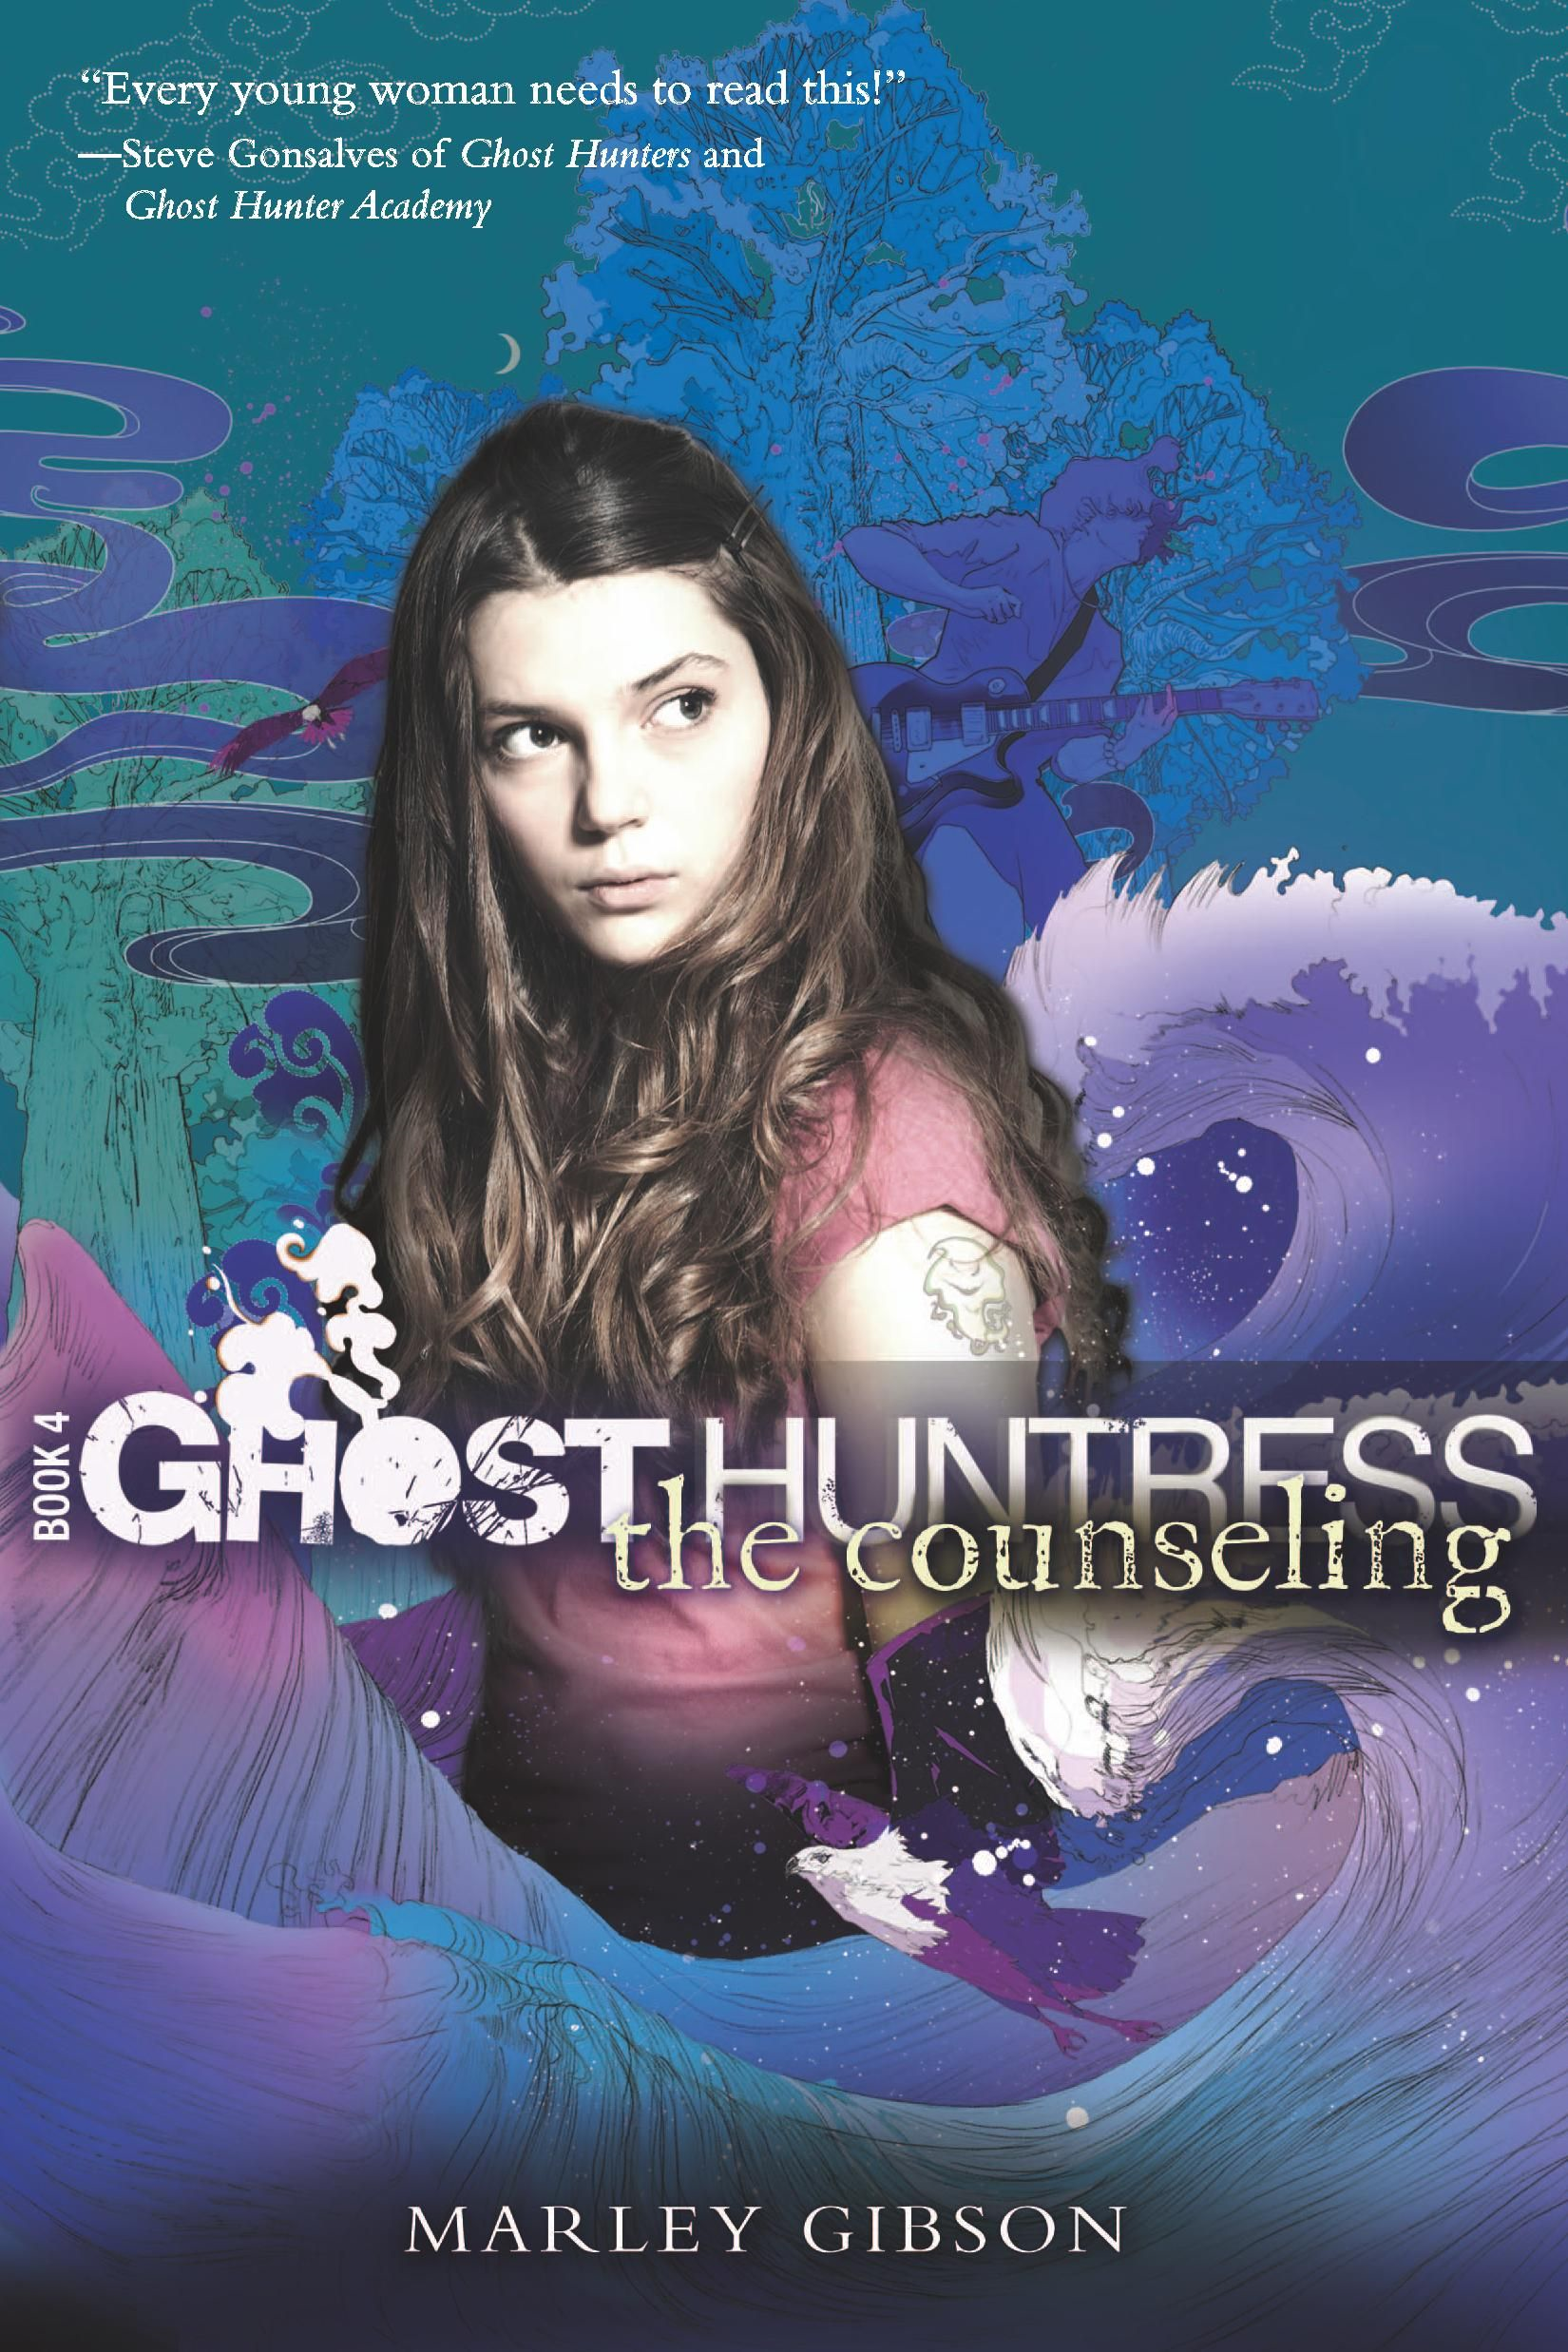 Ghost Huntress Book 4: The Counseling